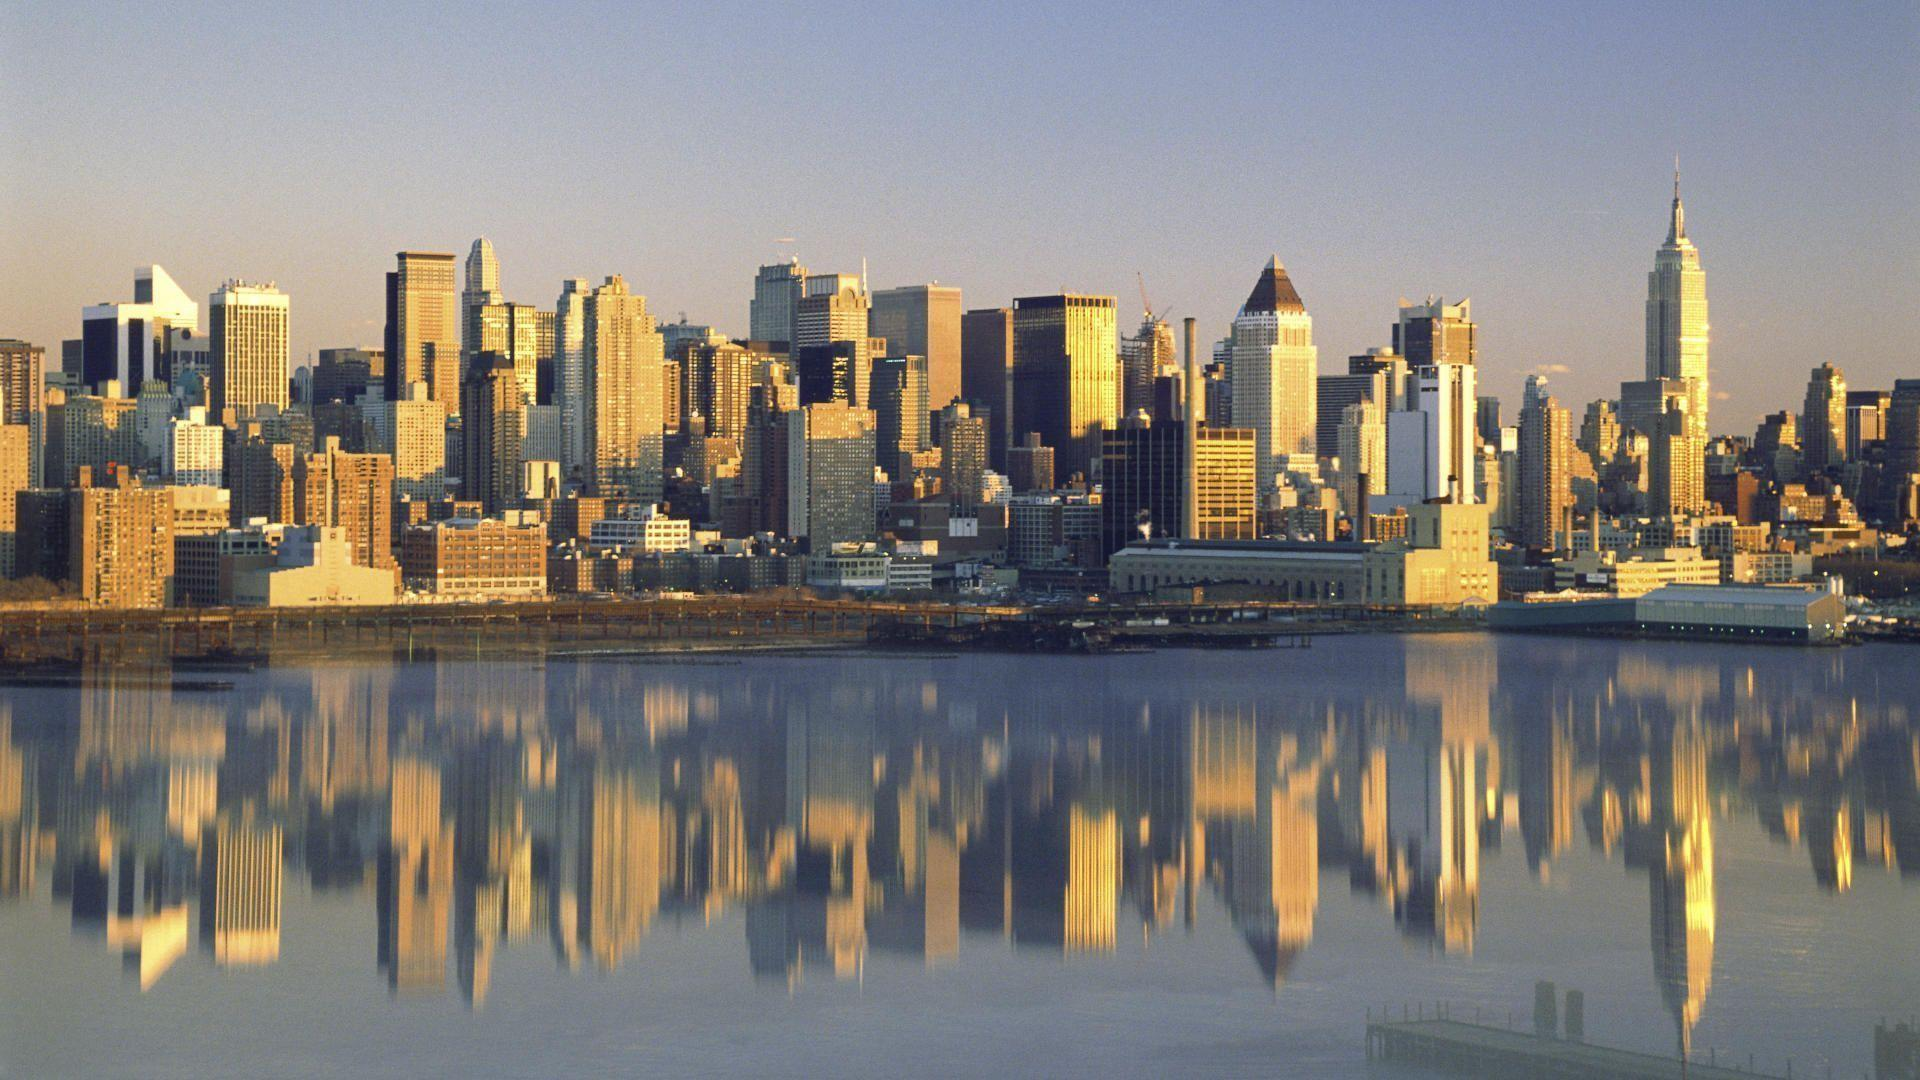 new york wallpaper 1920x1080, nyc hd wallpapers 1080p